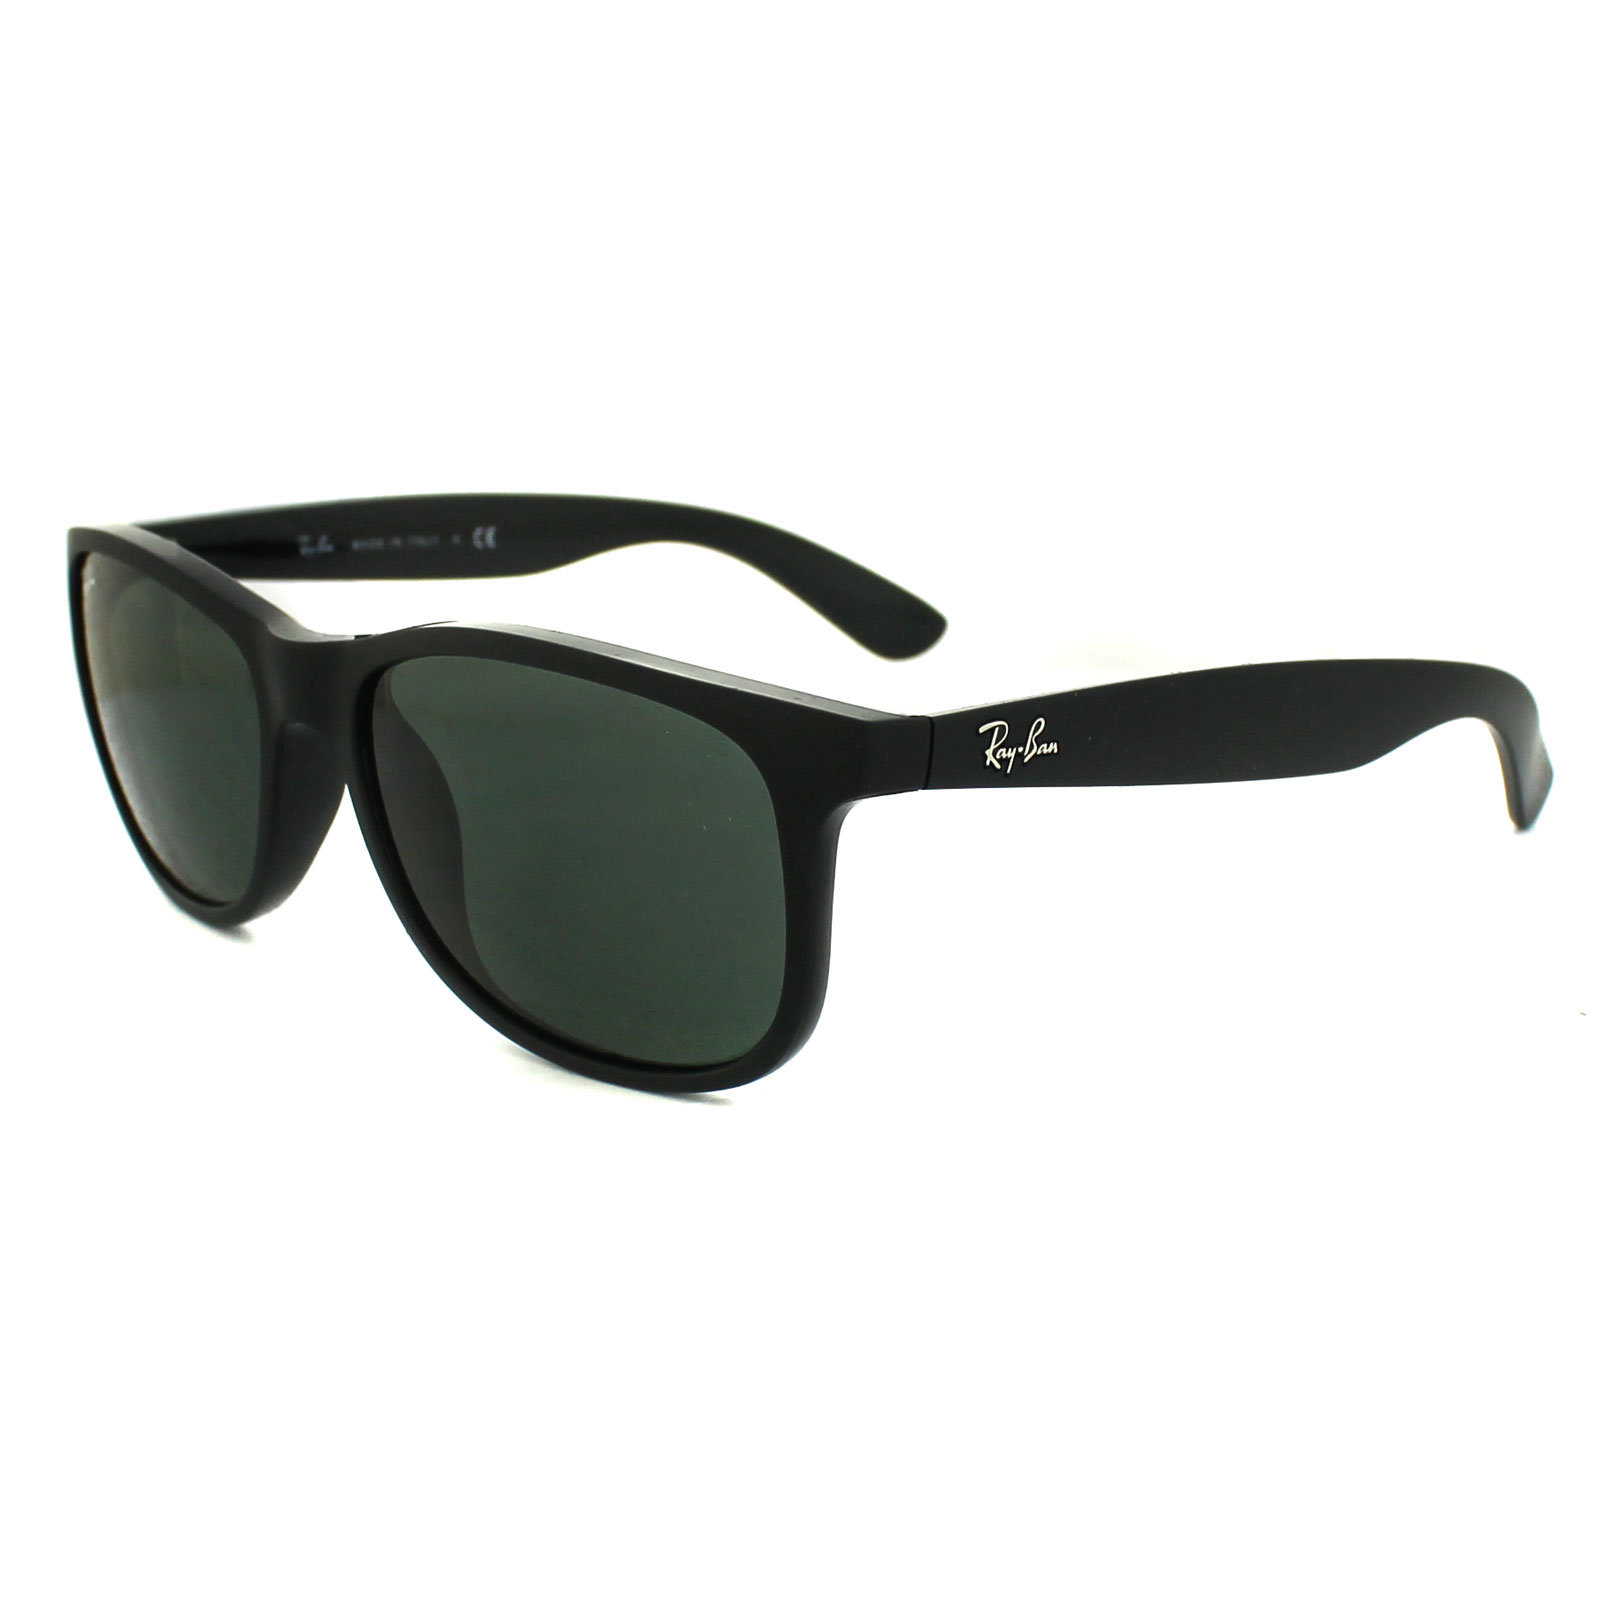 3f4fa91d9e Ray-Ban Sunglasses Andy 4202 606971 Matte Black Green 8053672188868 ...